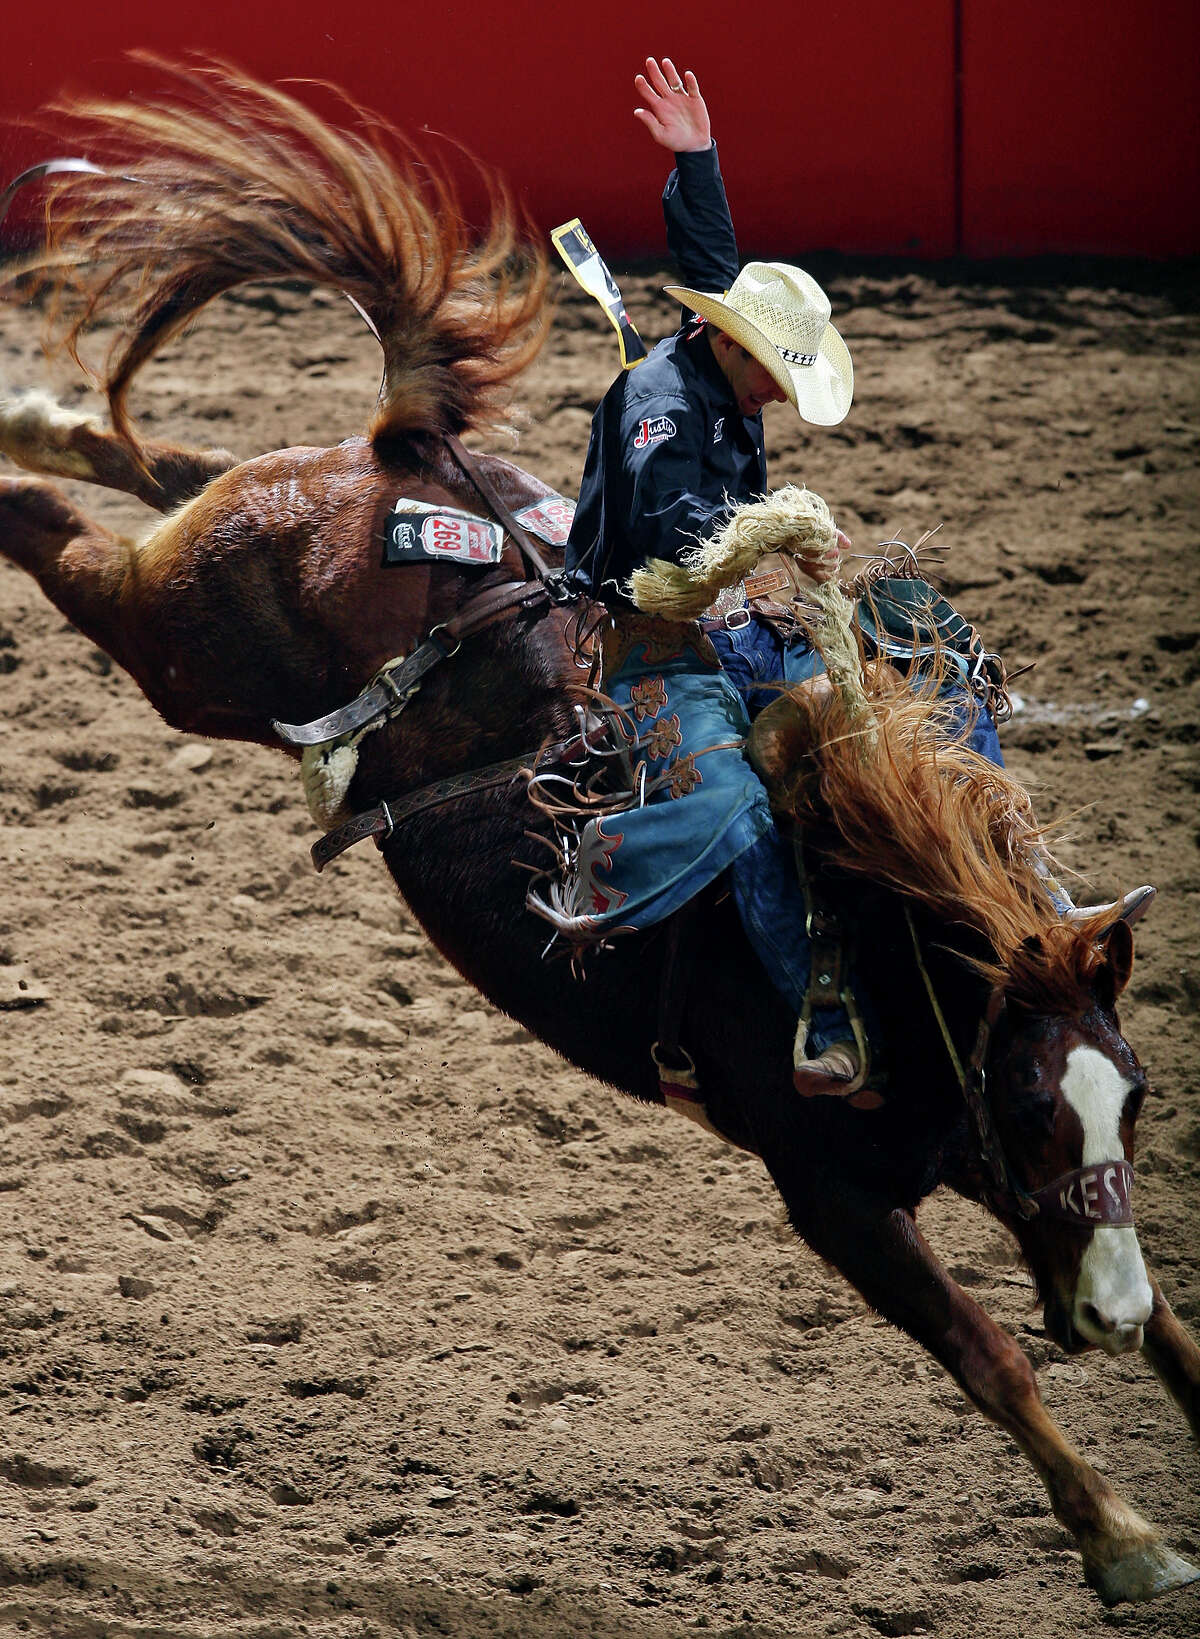 Heith DeMoss, from Helfin, LA, competes in the Saddle Bronc Riding event Saturday Feb. 19, 2011 during the San Antonio Stock Show & Rodeo at the AT&T Center. DeMoss scored an 88 on the ride and won the event.